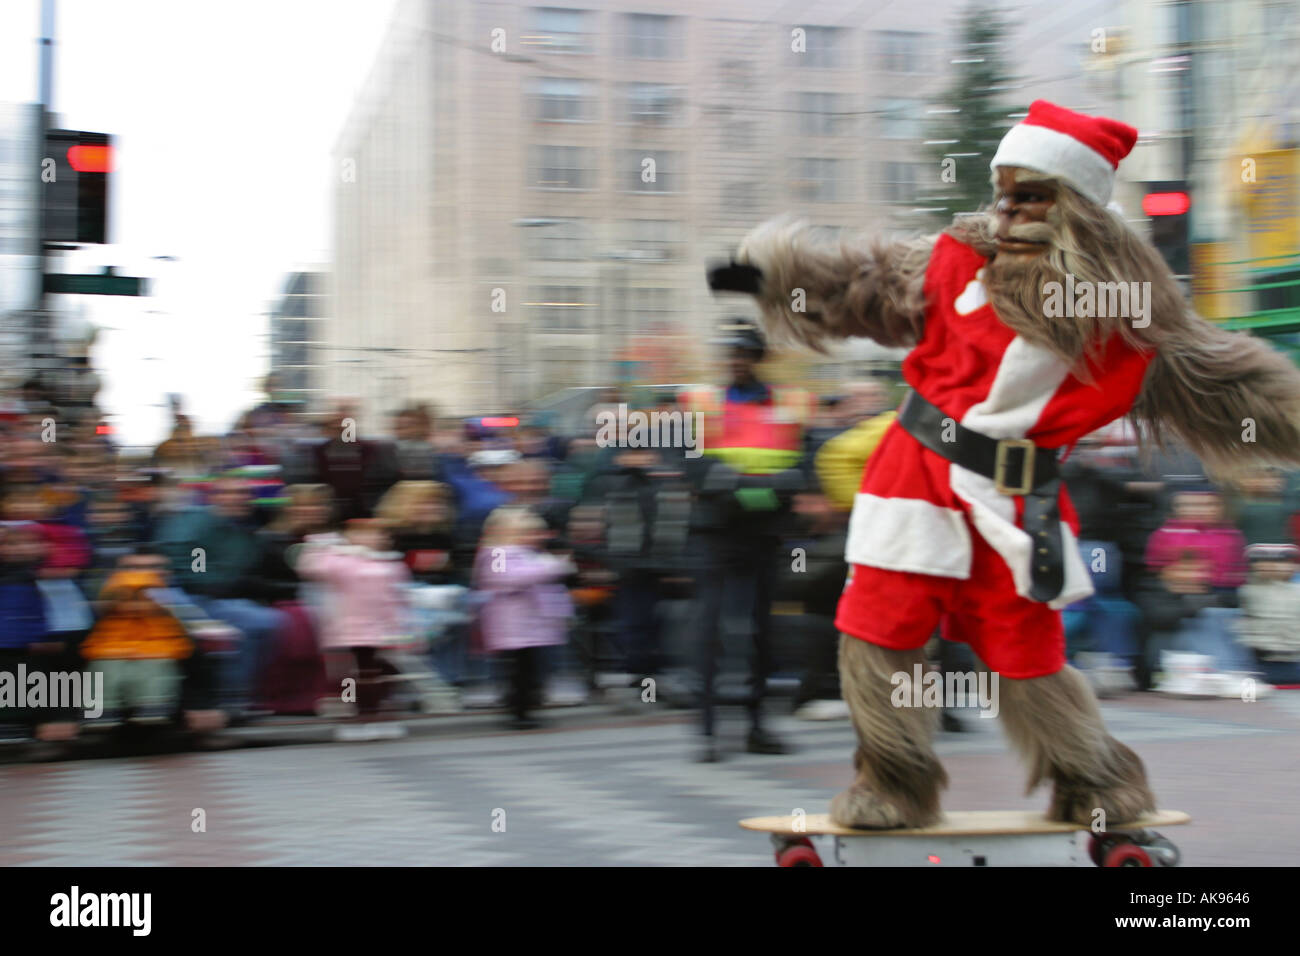 Wheedle the Sonics Basketball team mascot on skateboard in Christmas holiday parade on Fifth Avenue Seattle Washington - Stock Image